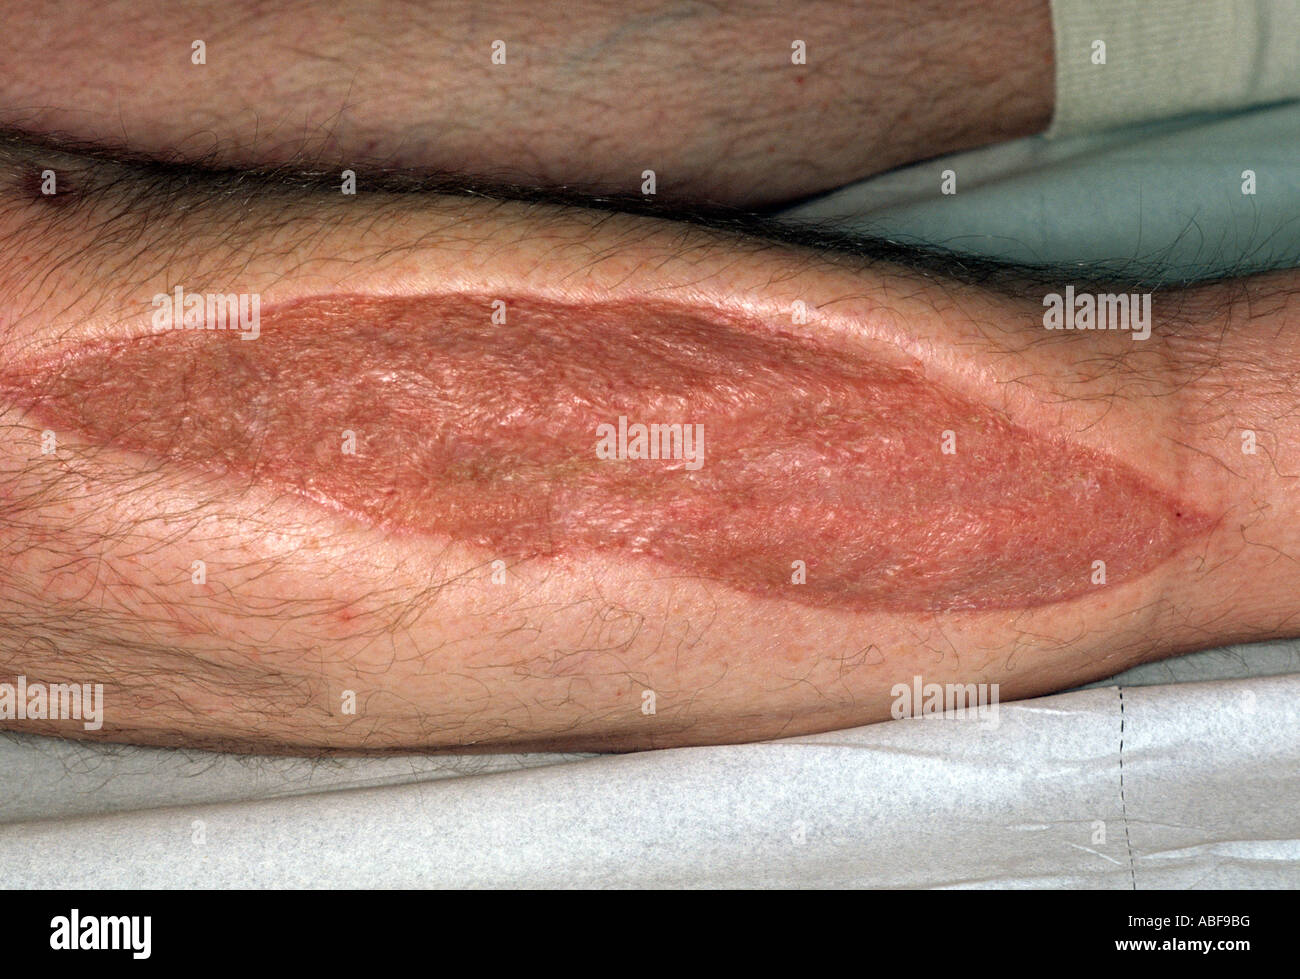 scar of fasciotomy for anterior compartment syndrome - Stock Image